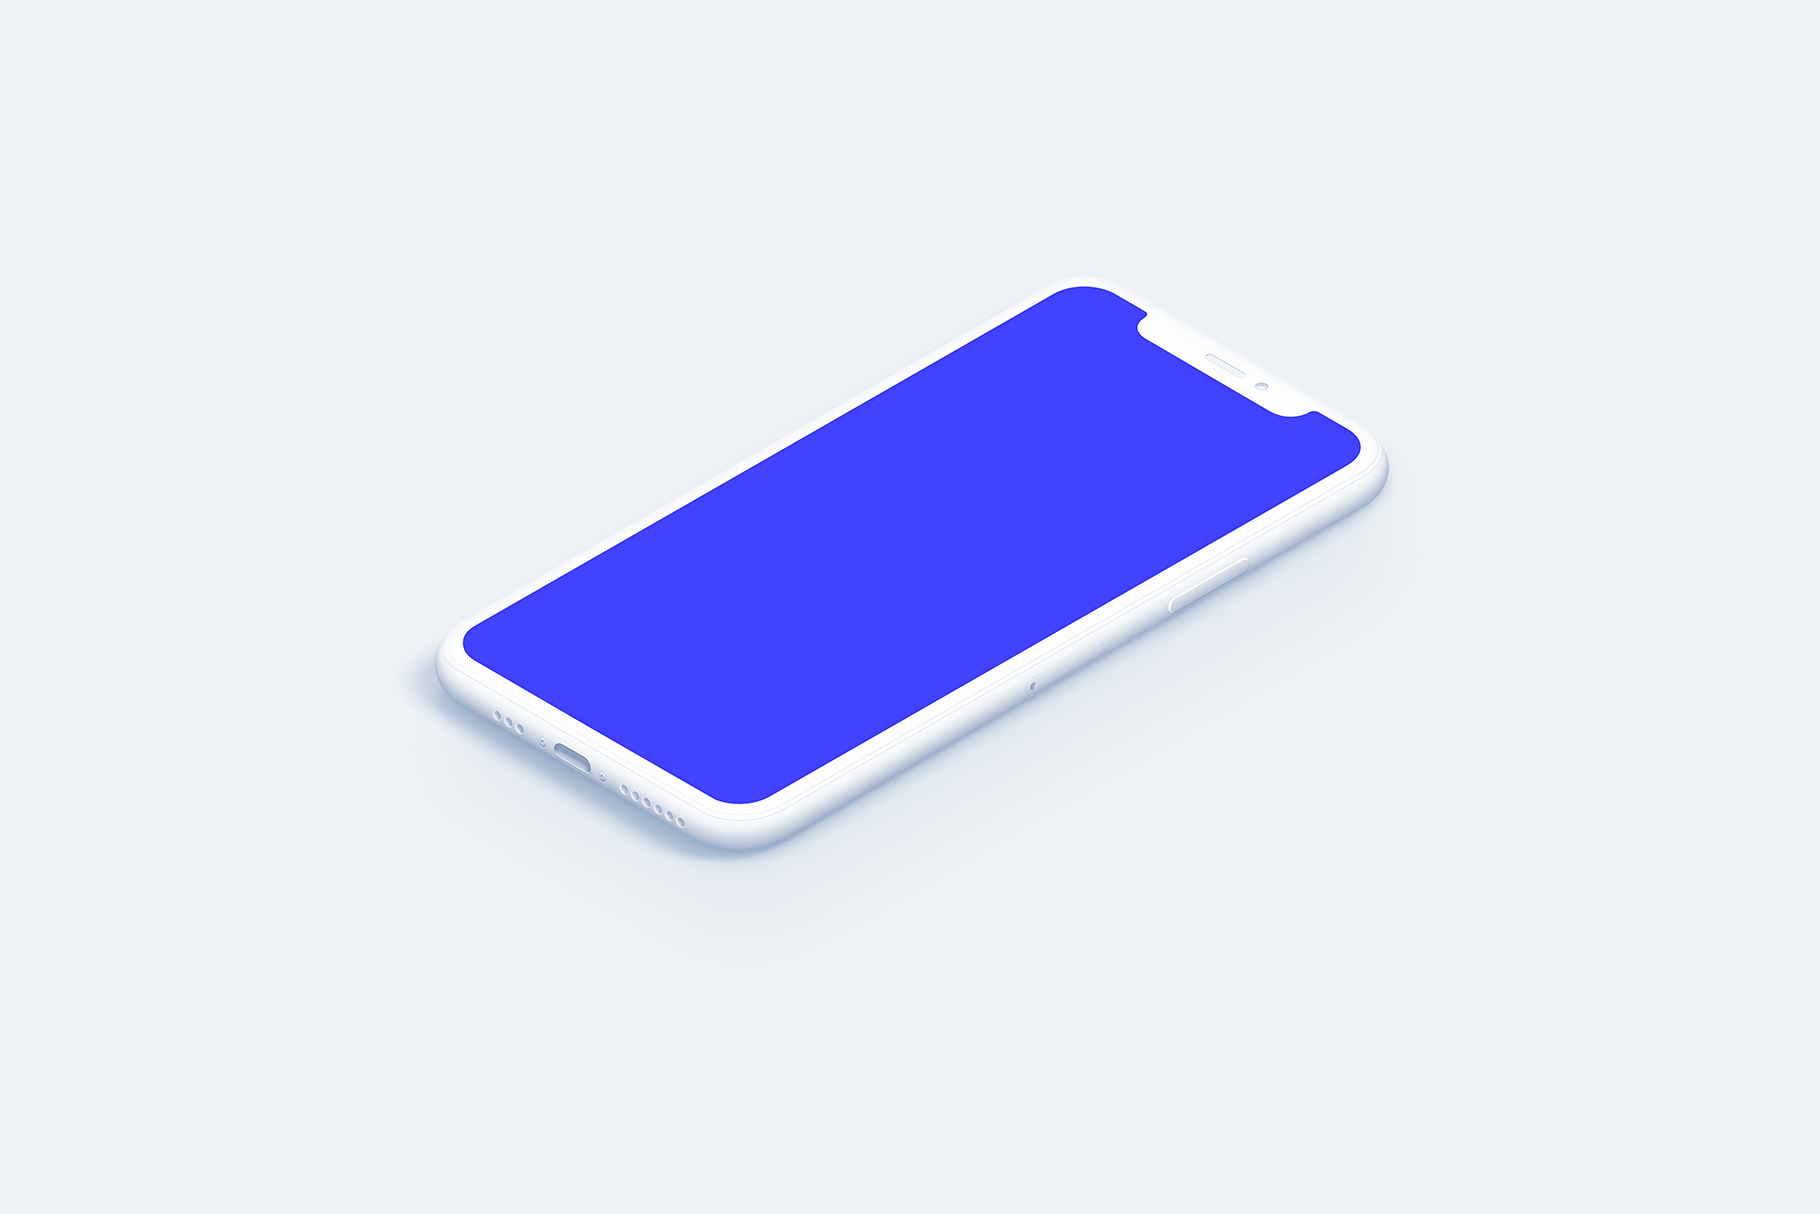 iPhone 11 Pro - 20 Clay Mockups Scenes - PSD example image 16